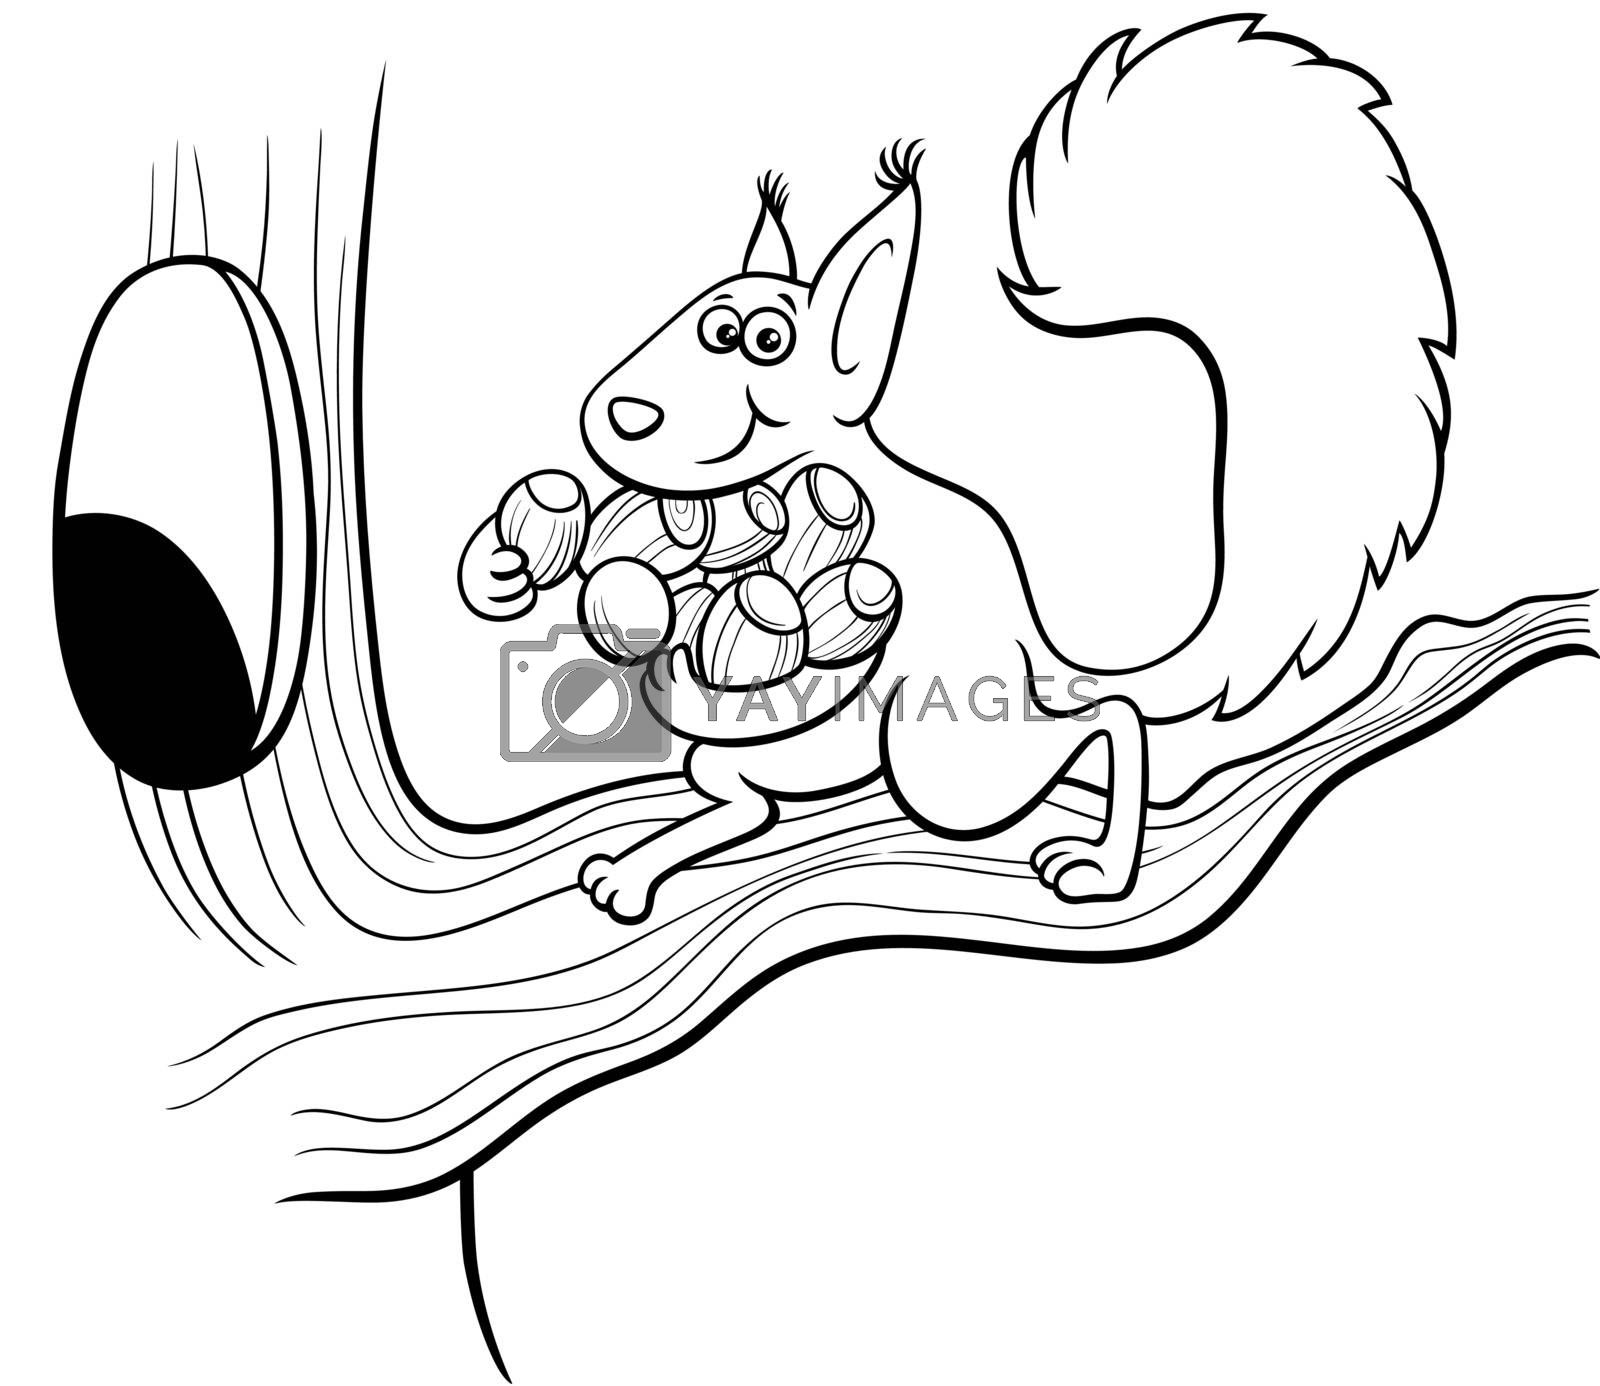 Black and white cartoon illustration of funny squirrel animal character carrying acorns to the hollow in the tree coloring book page